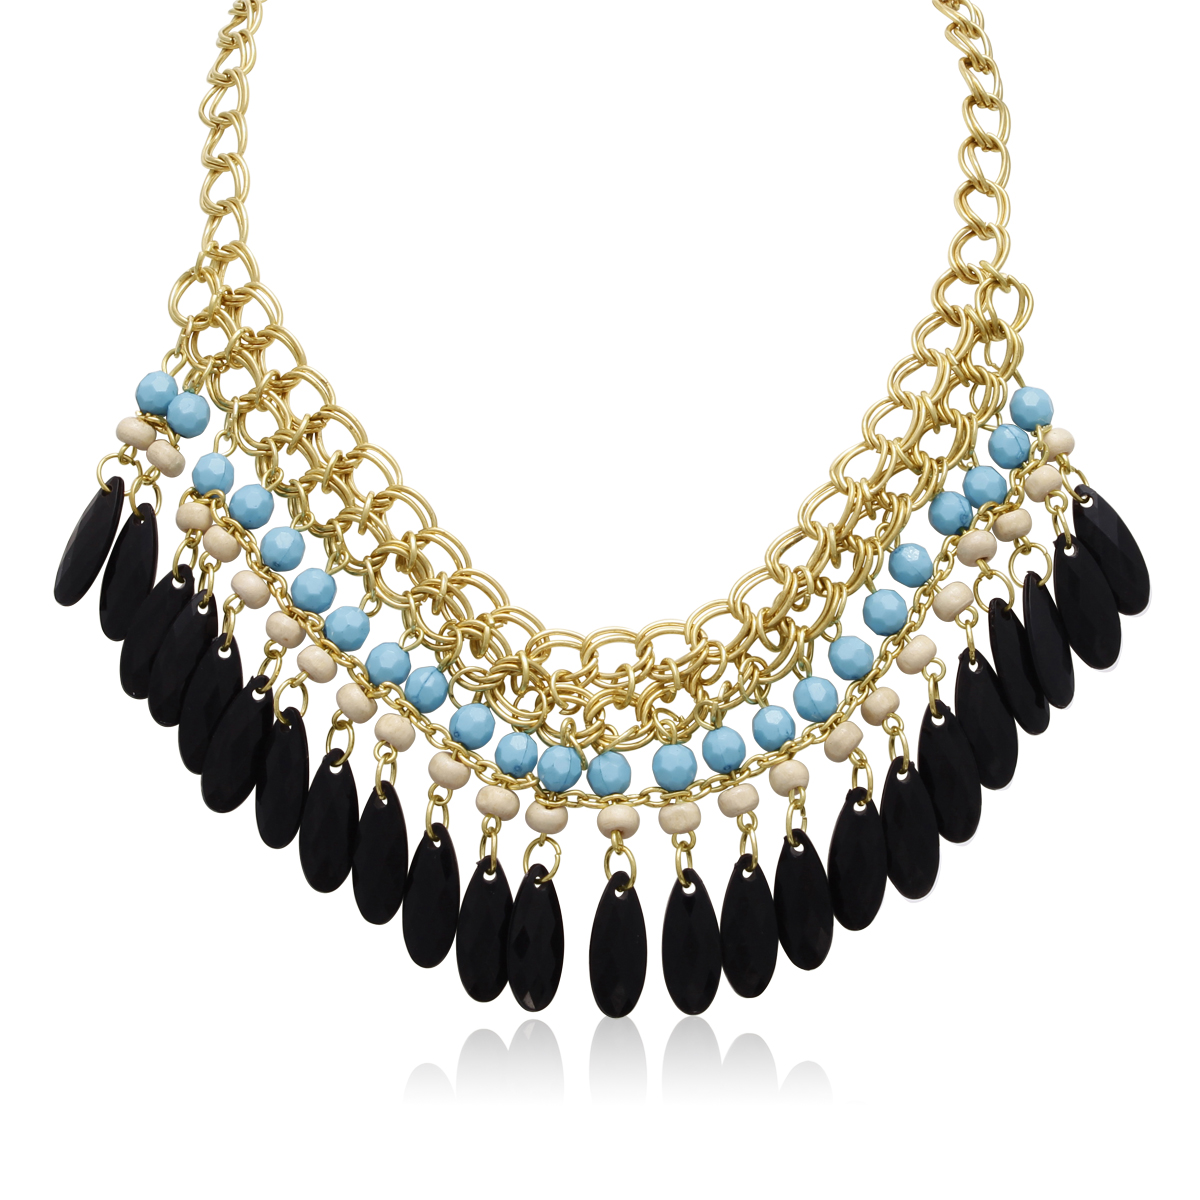 Turquoise and Black Onyx Crystal Bib Necklace In Gold Overlay, 16 Inches